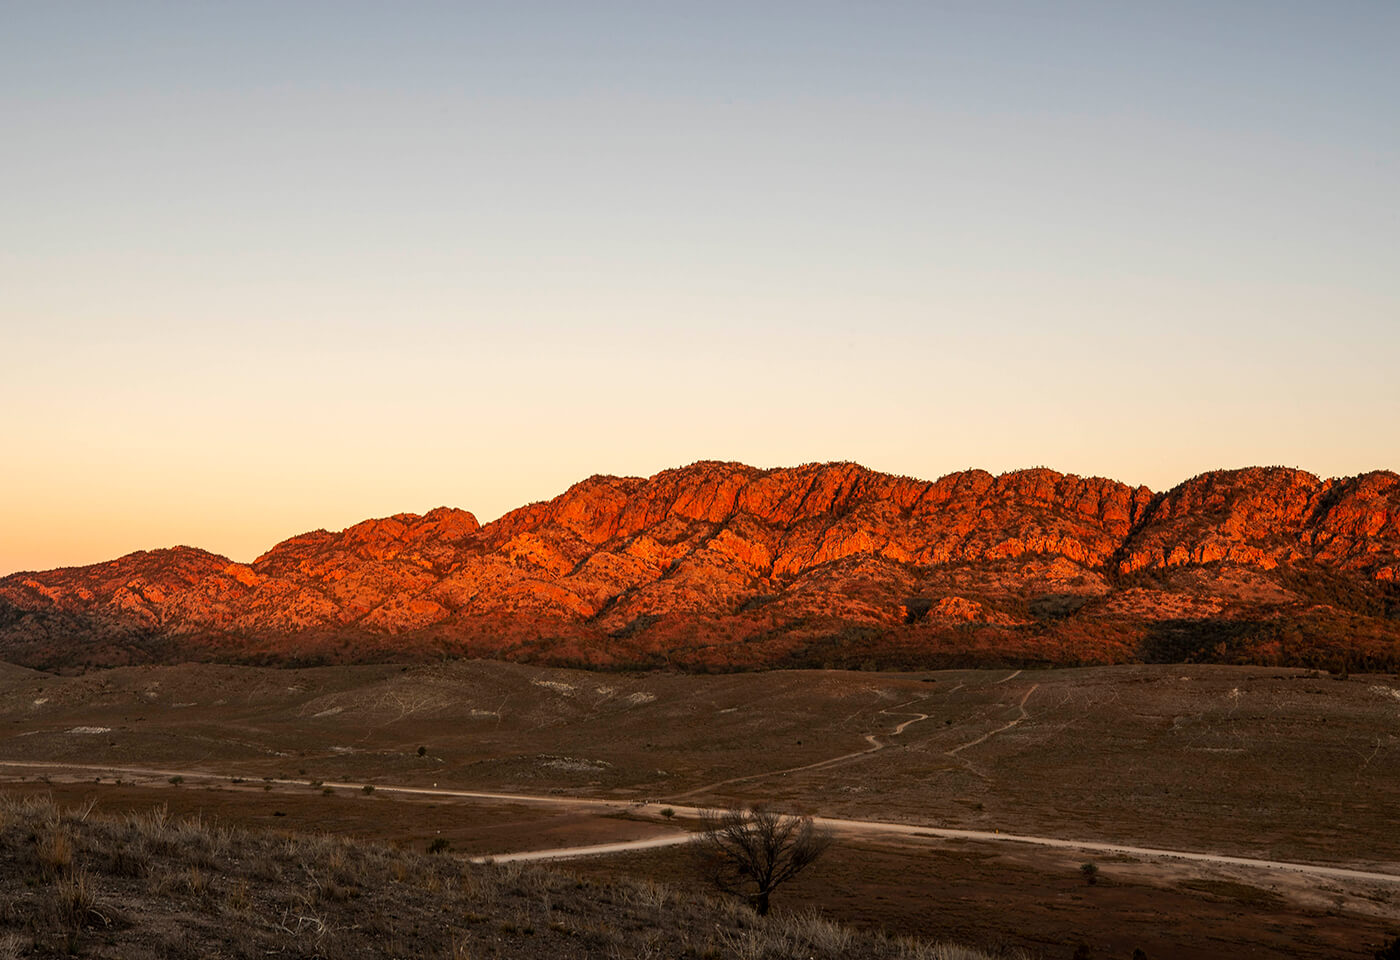 Sunset Photography at Simpsons Gap by Steve Huddy